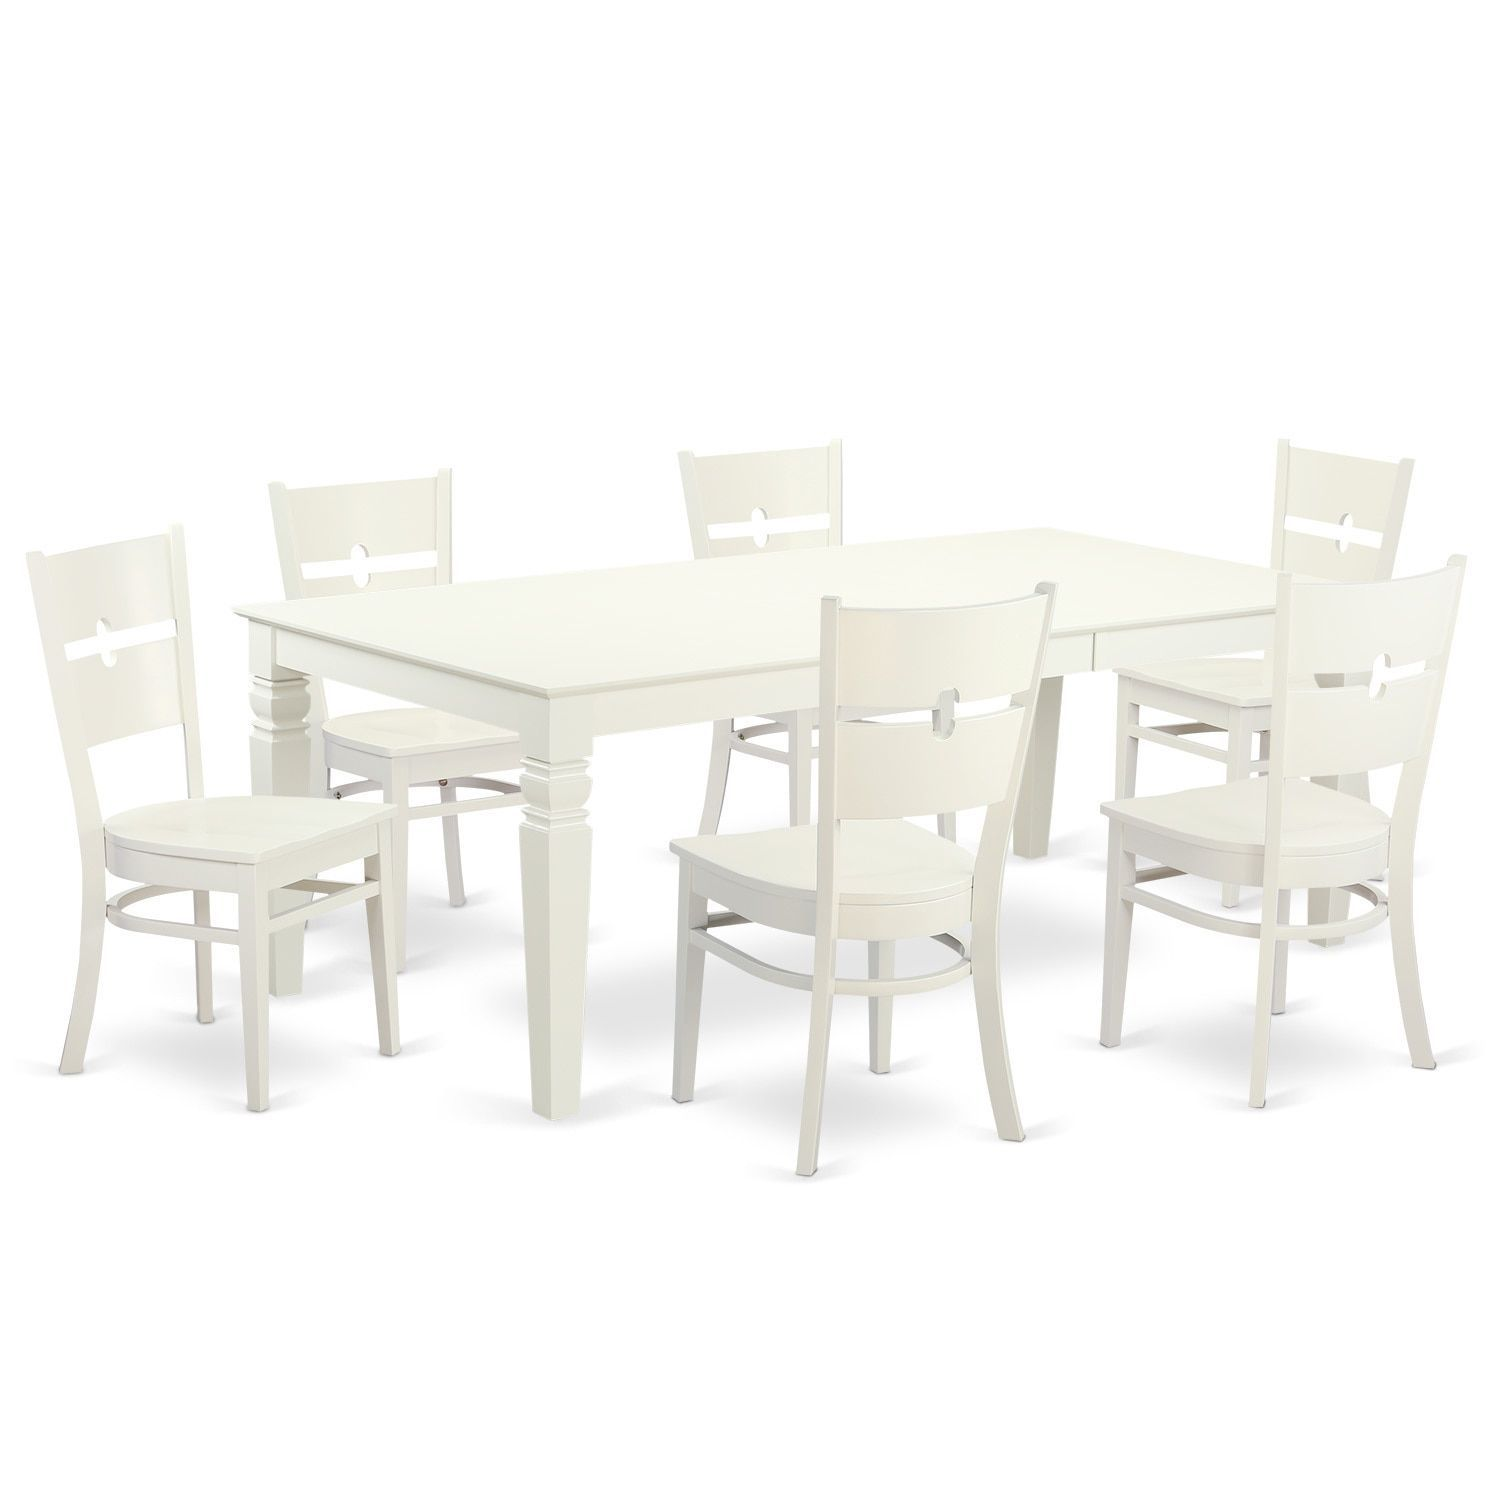 LGRO-LWH-W Dinette set with one Logan table and four up to 8 ...